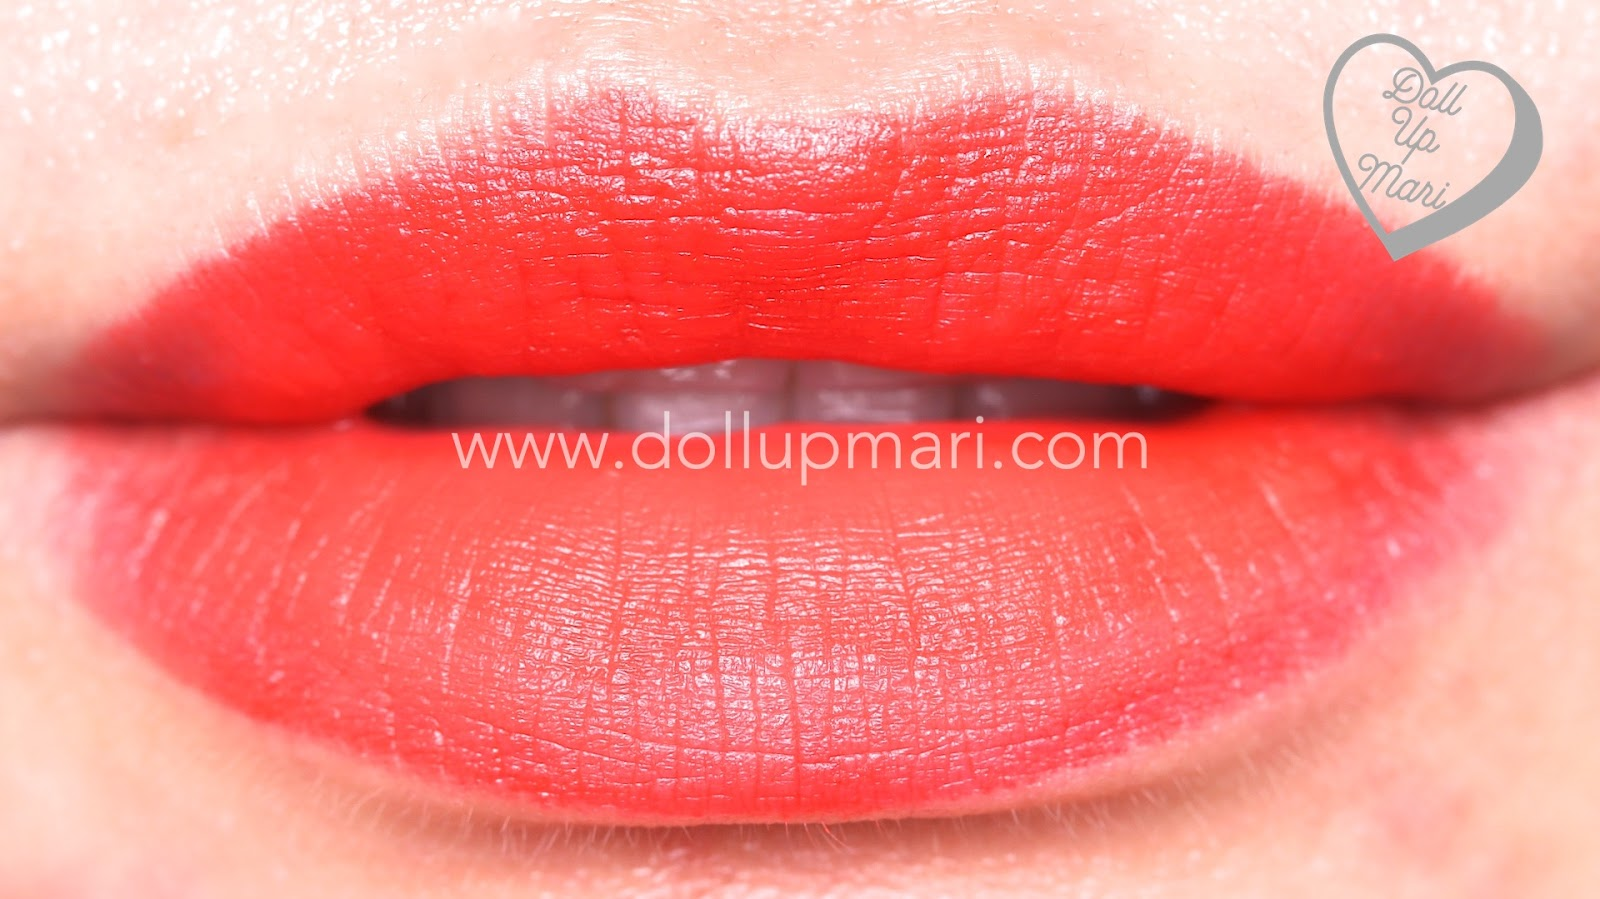 lip swatch of Coral Fever shade of AVON Perfectly Matte Lipstick